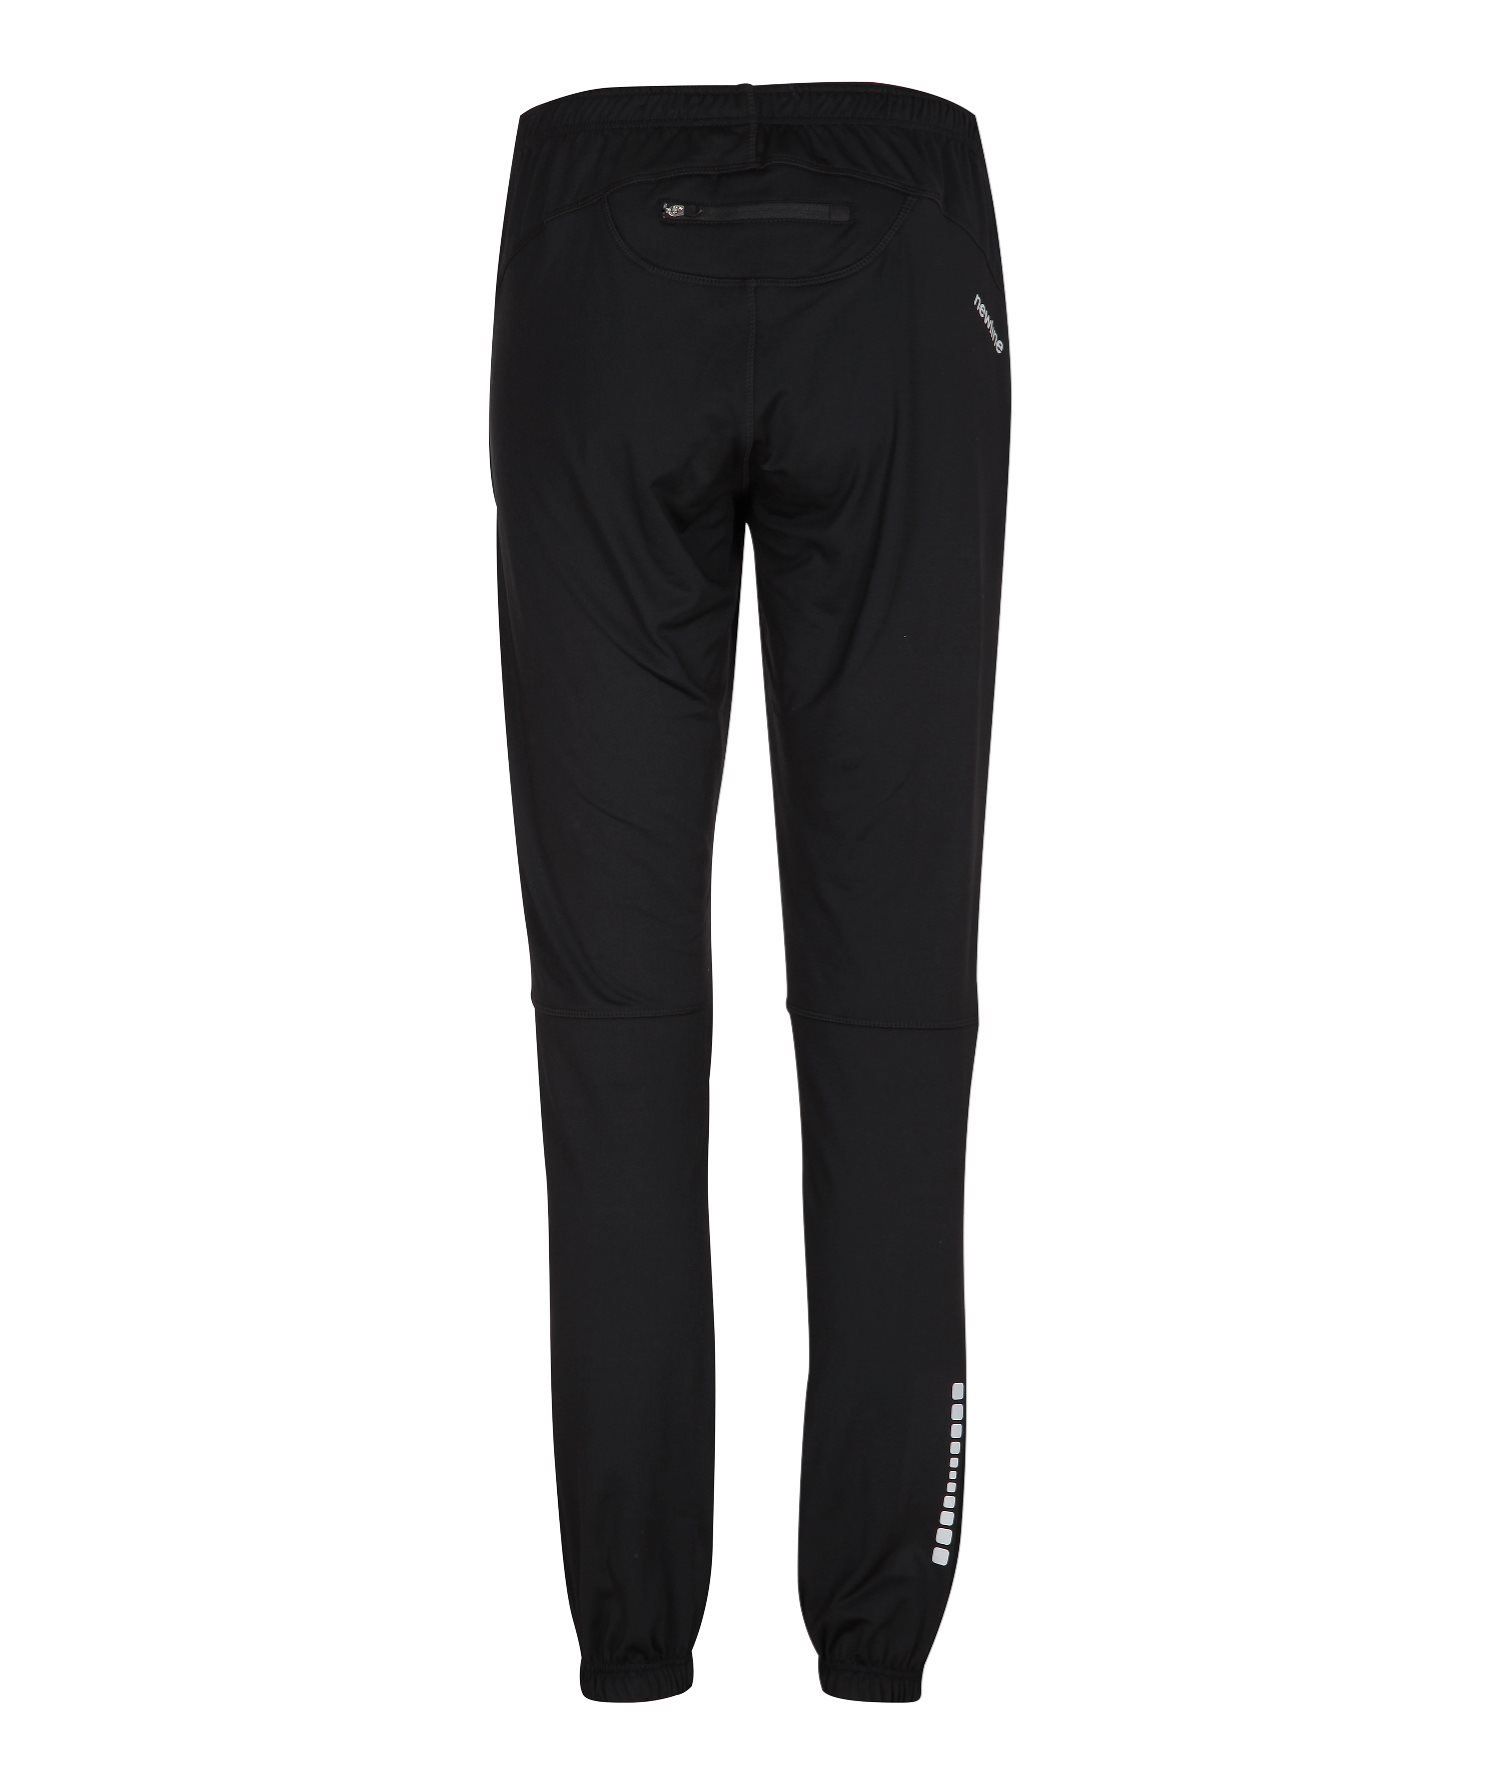 Newline Base Cross Pants - Damen